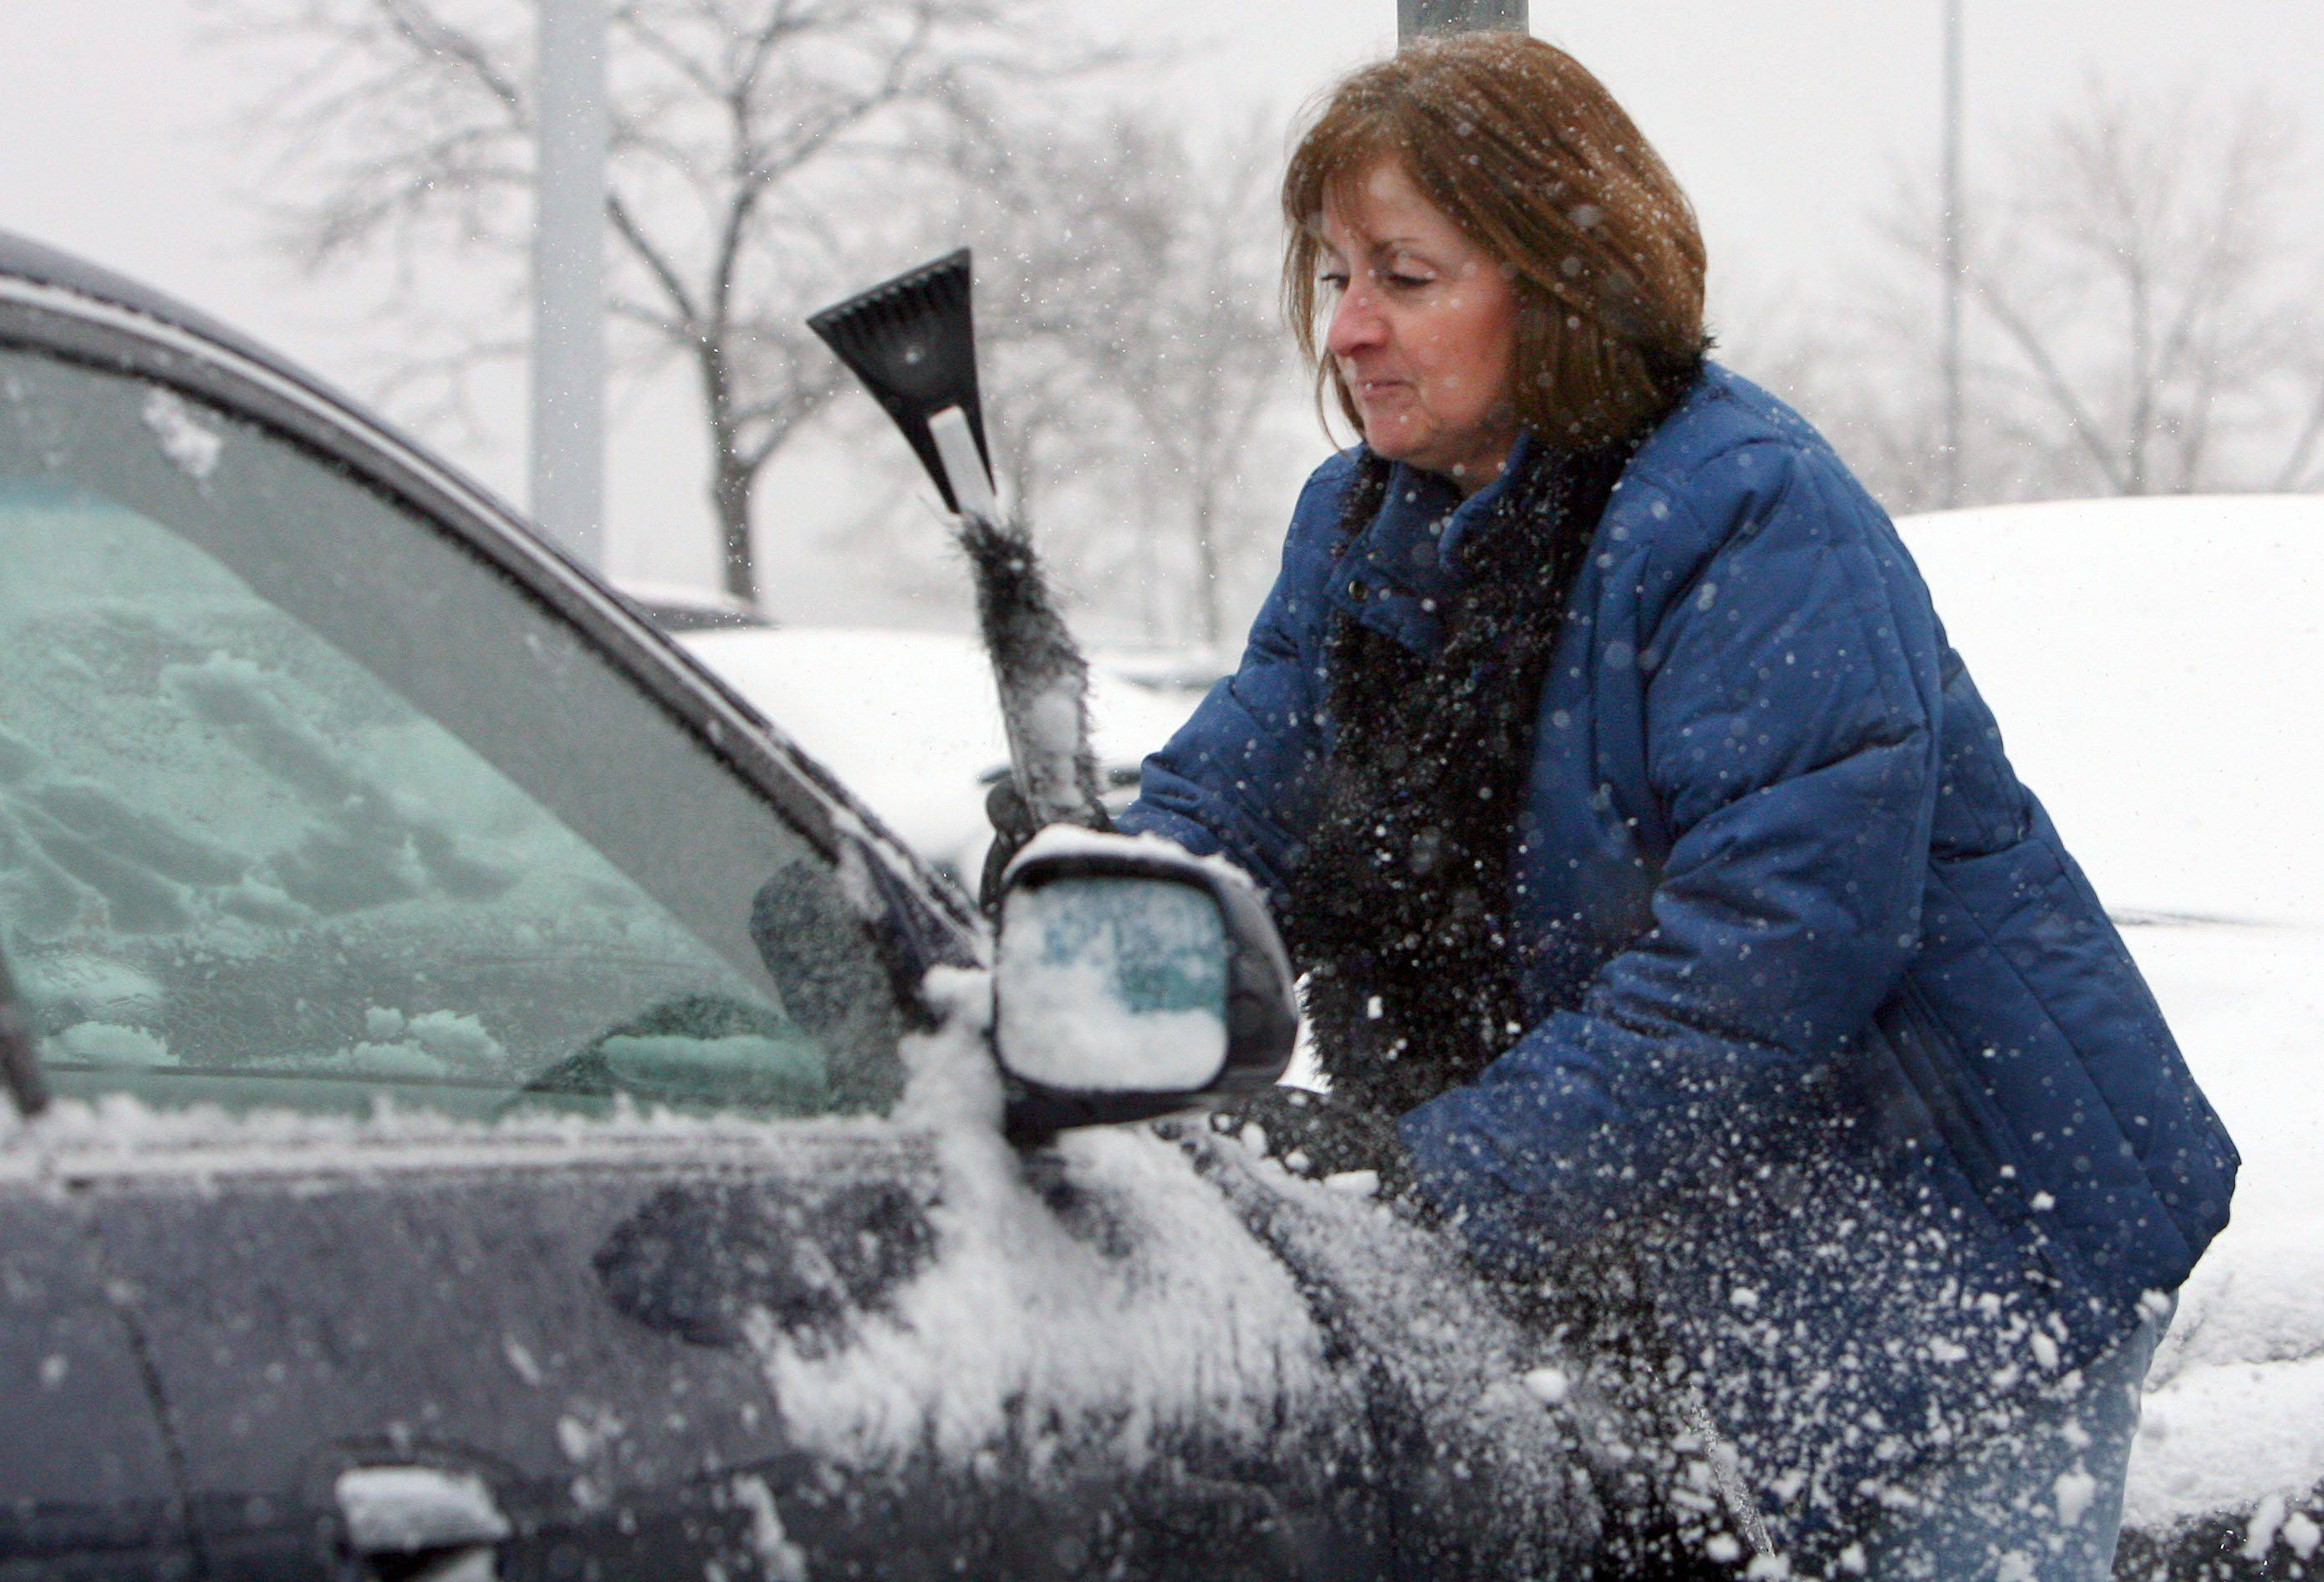 Deb Bresloff of Mundelein cleans off her car at Westfield Hawthorn mall in Vernon Hills. The area got its first winter storm of the year Thursday.